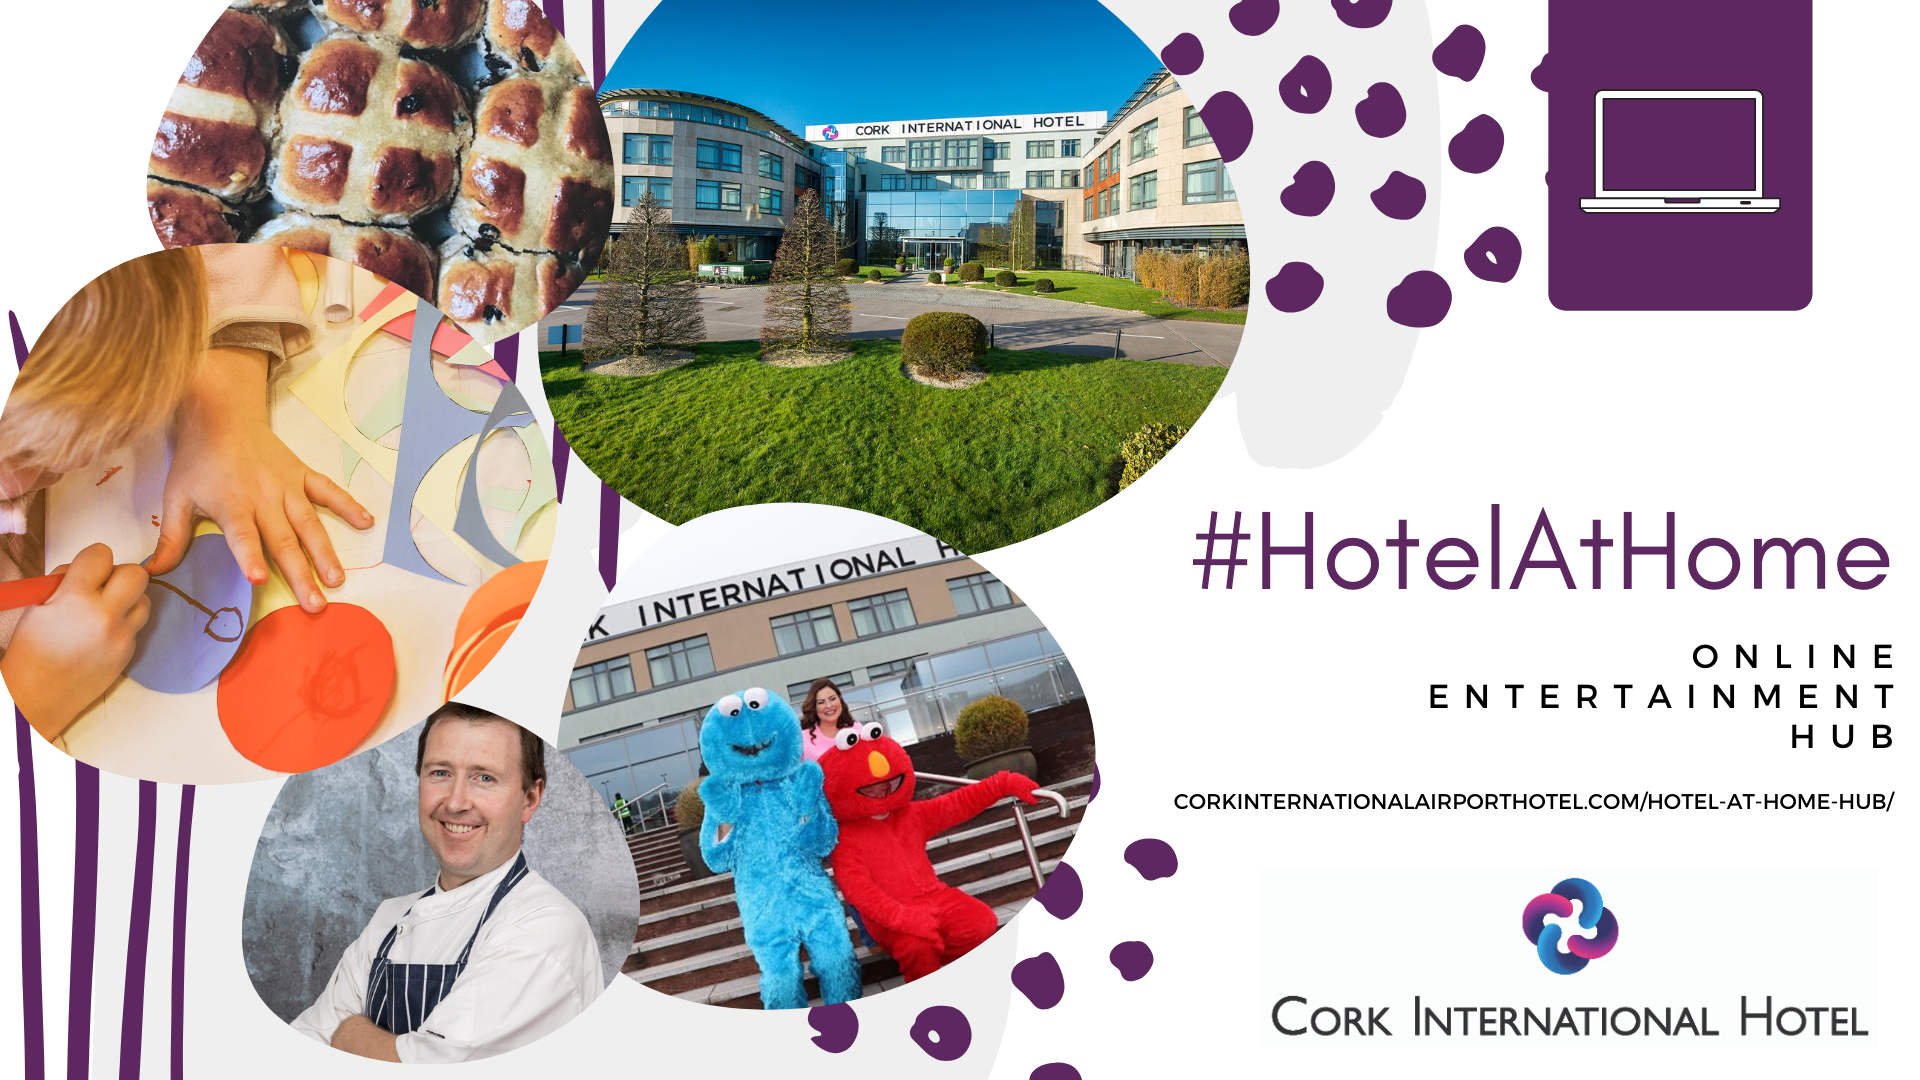 'Hotel at Home' hub launched by Cork International Hotel